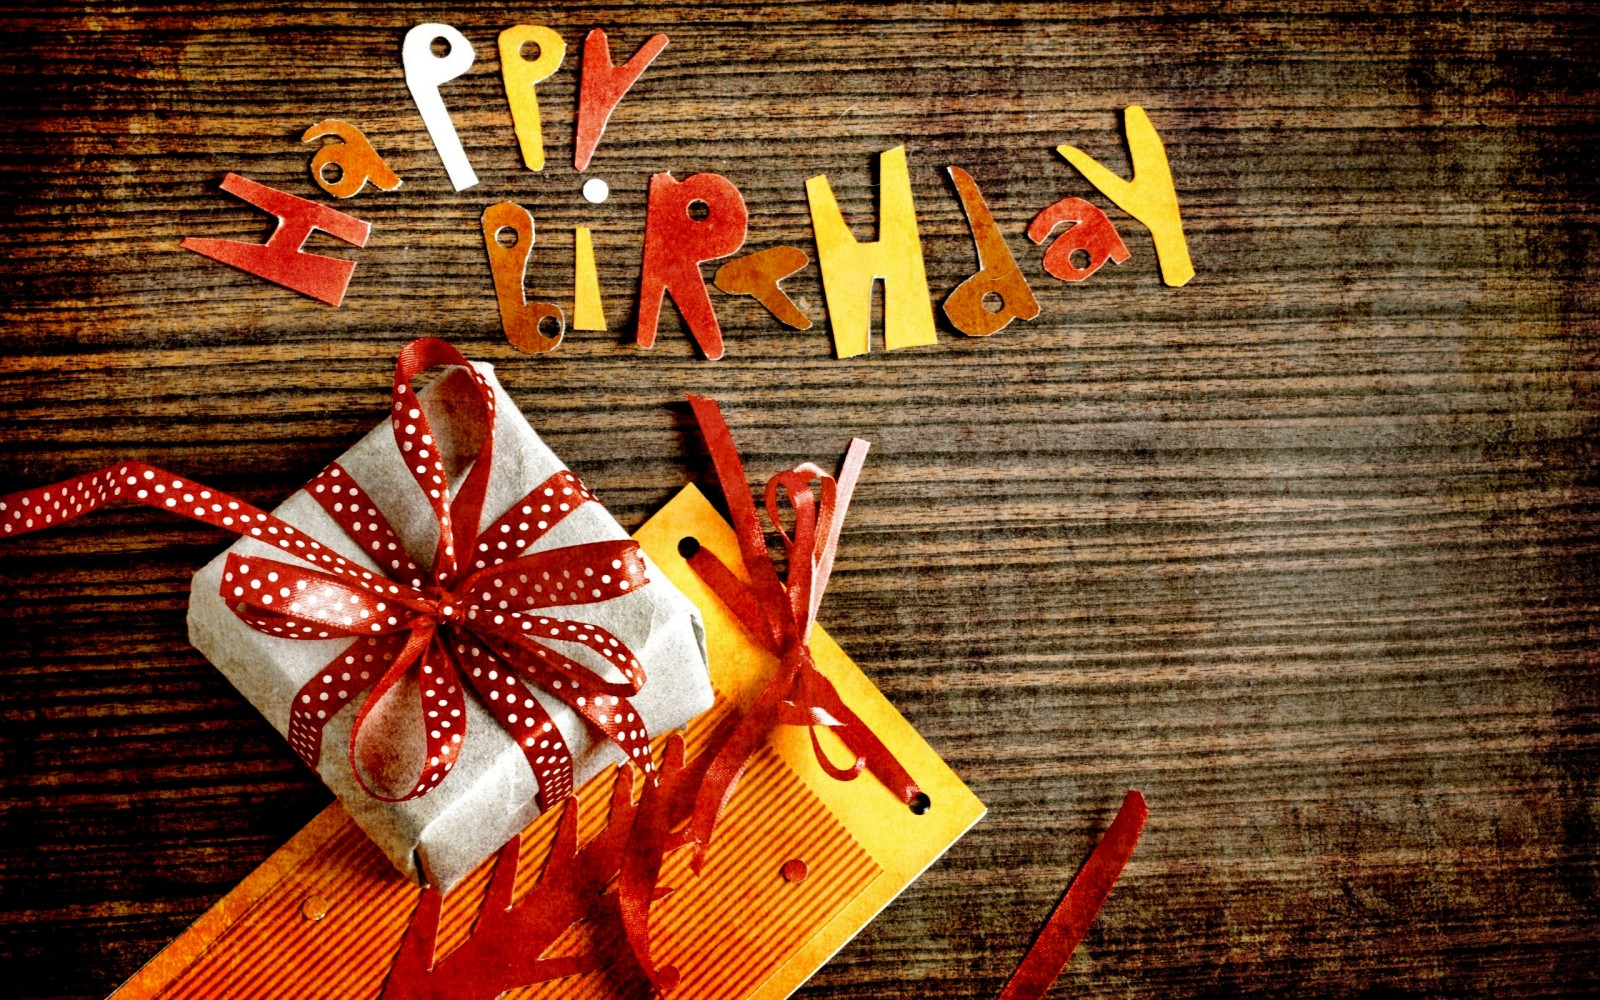 Hilarious Birthday Wishes That Can Make Your Friends Laugh on Their Birthday 2